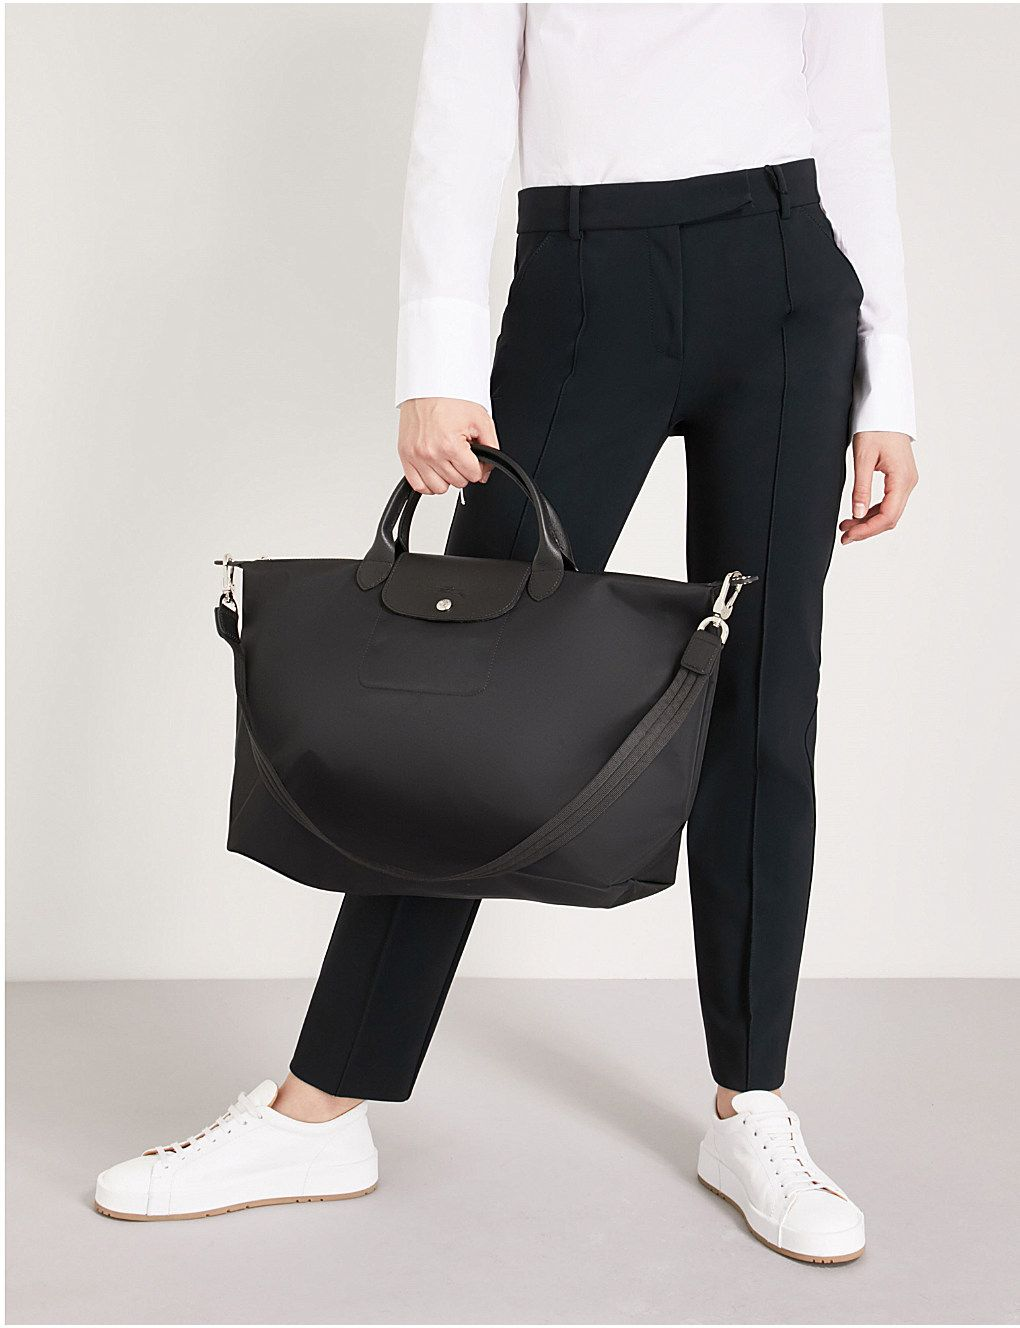 af7615345 Le Pliage Neo large handbag in 2019 | Fashion | Large handbags ...